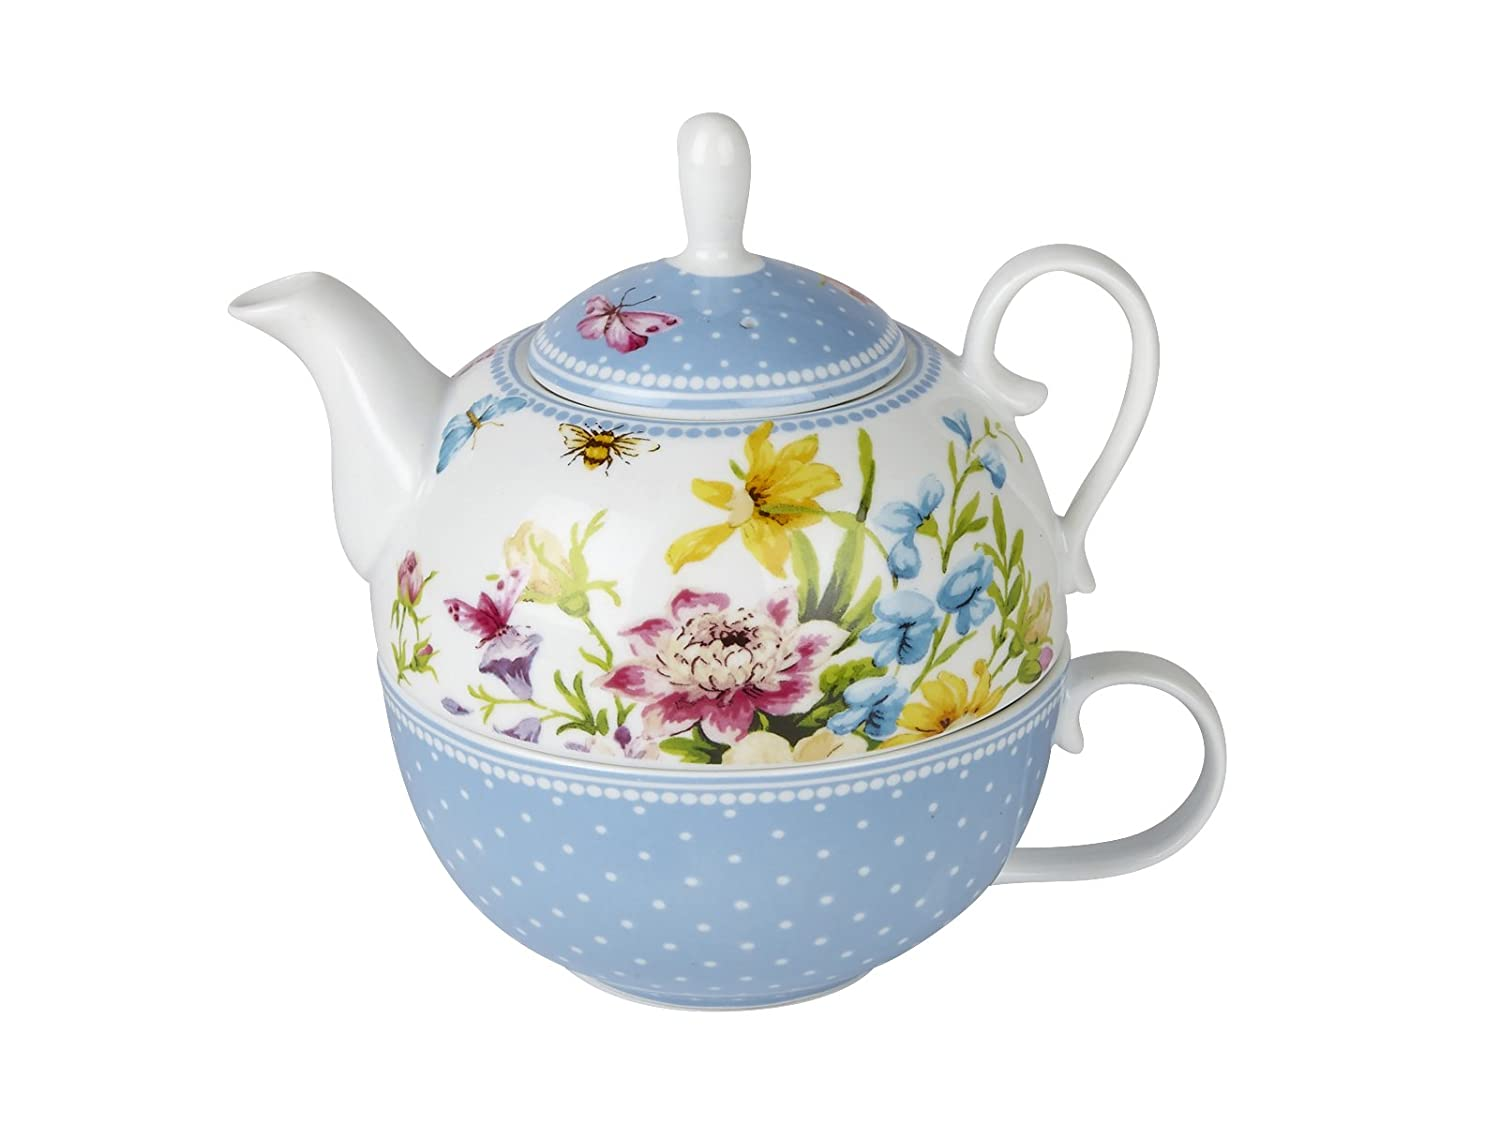 Katie Alice Ditsy Floral Ceramic Tea for One Teapot and Cup - Teapot Capacity: 450 ml (15 fl oz), Cup Capacity: 280 ml (9 fl oz) 5202103